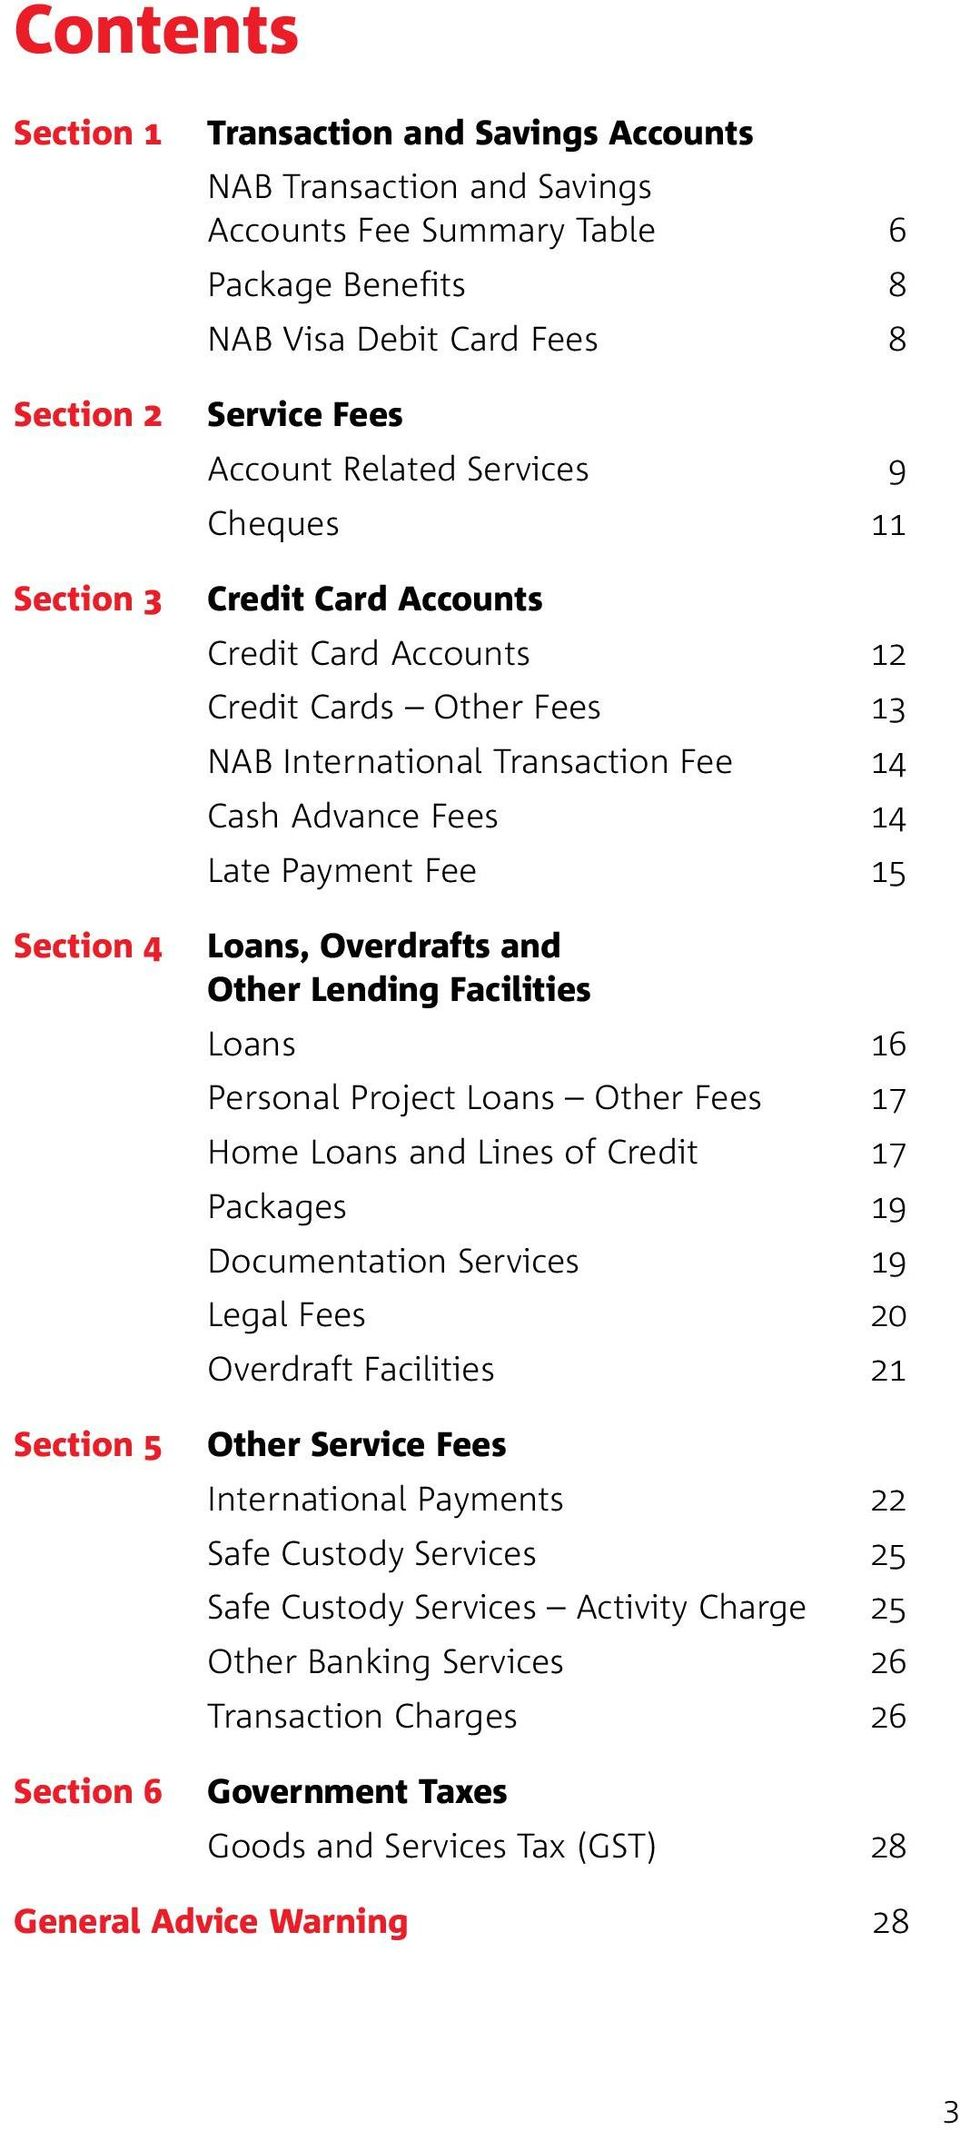 Payment Fee 15 Loans, Overdrafts and Other Lending Facilities Loans 16 Personal Project Loans Other Fees 17 Home Loans and Lines of Credit 17 Packages 19 Documentation Services 19 Legal Fees 20